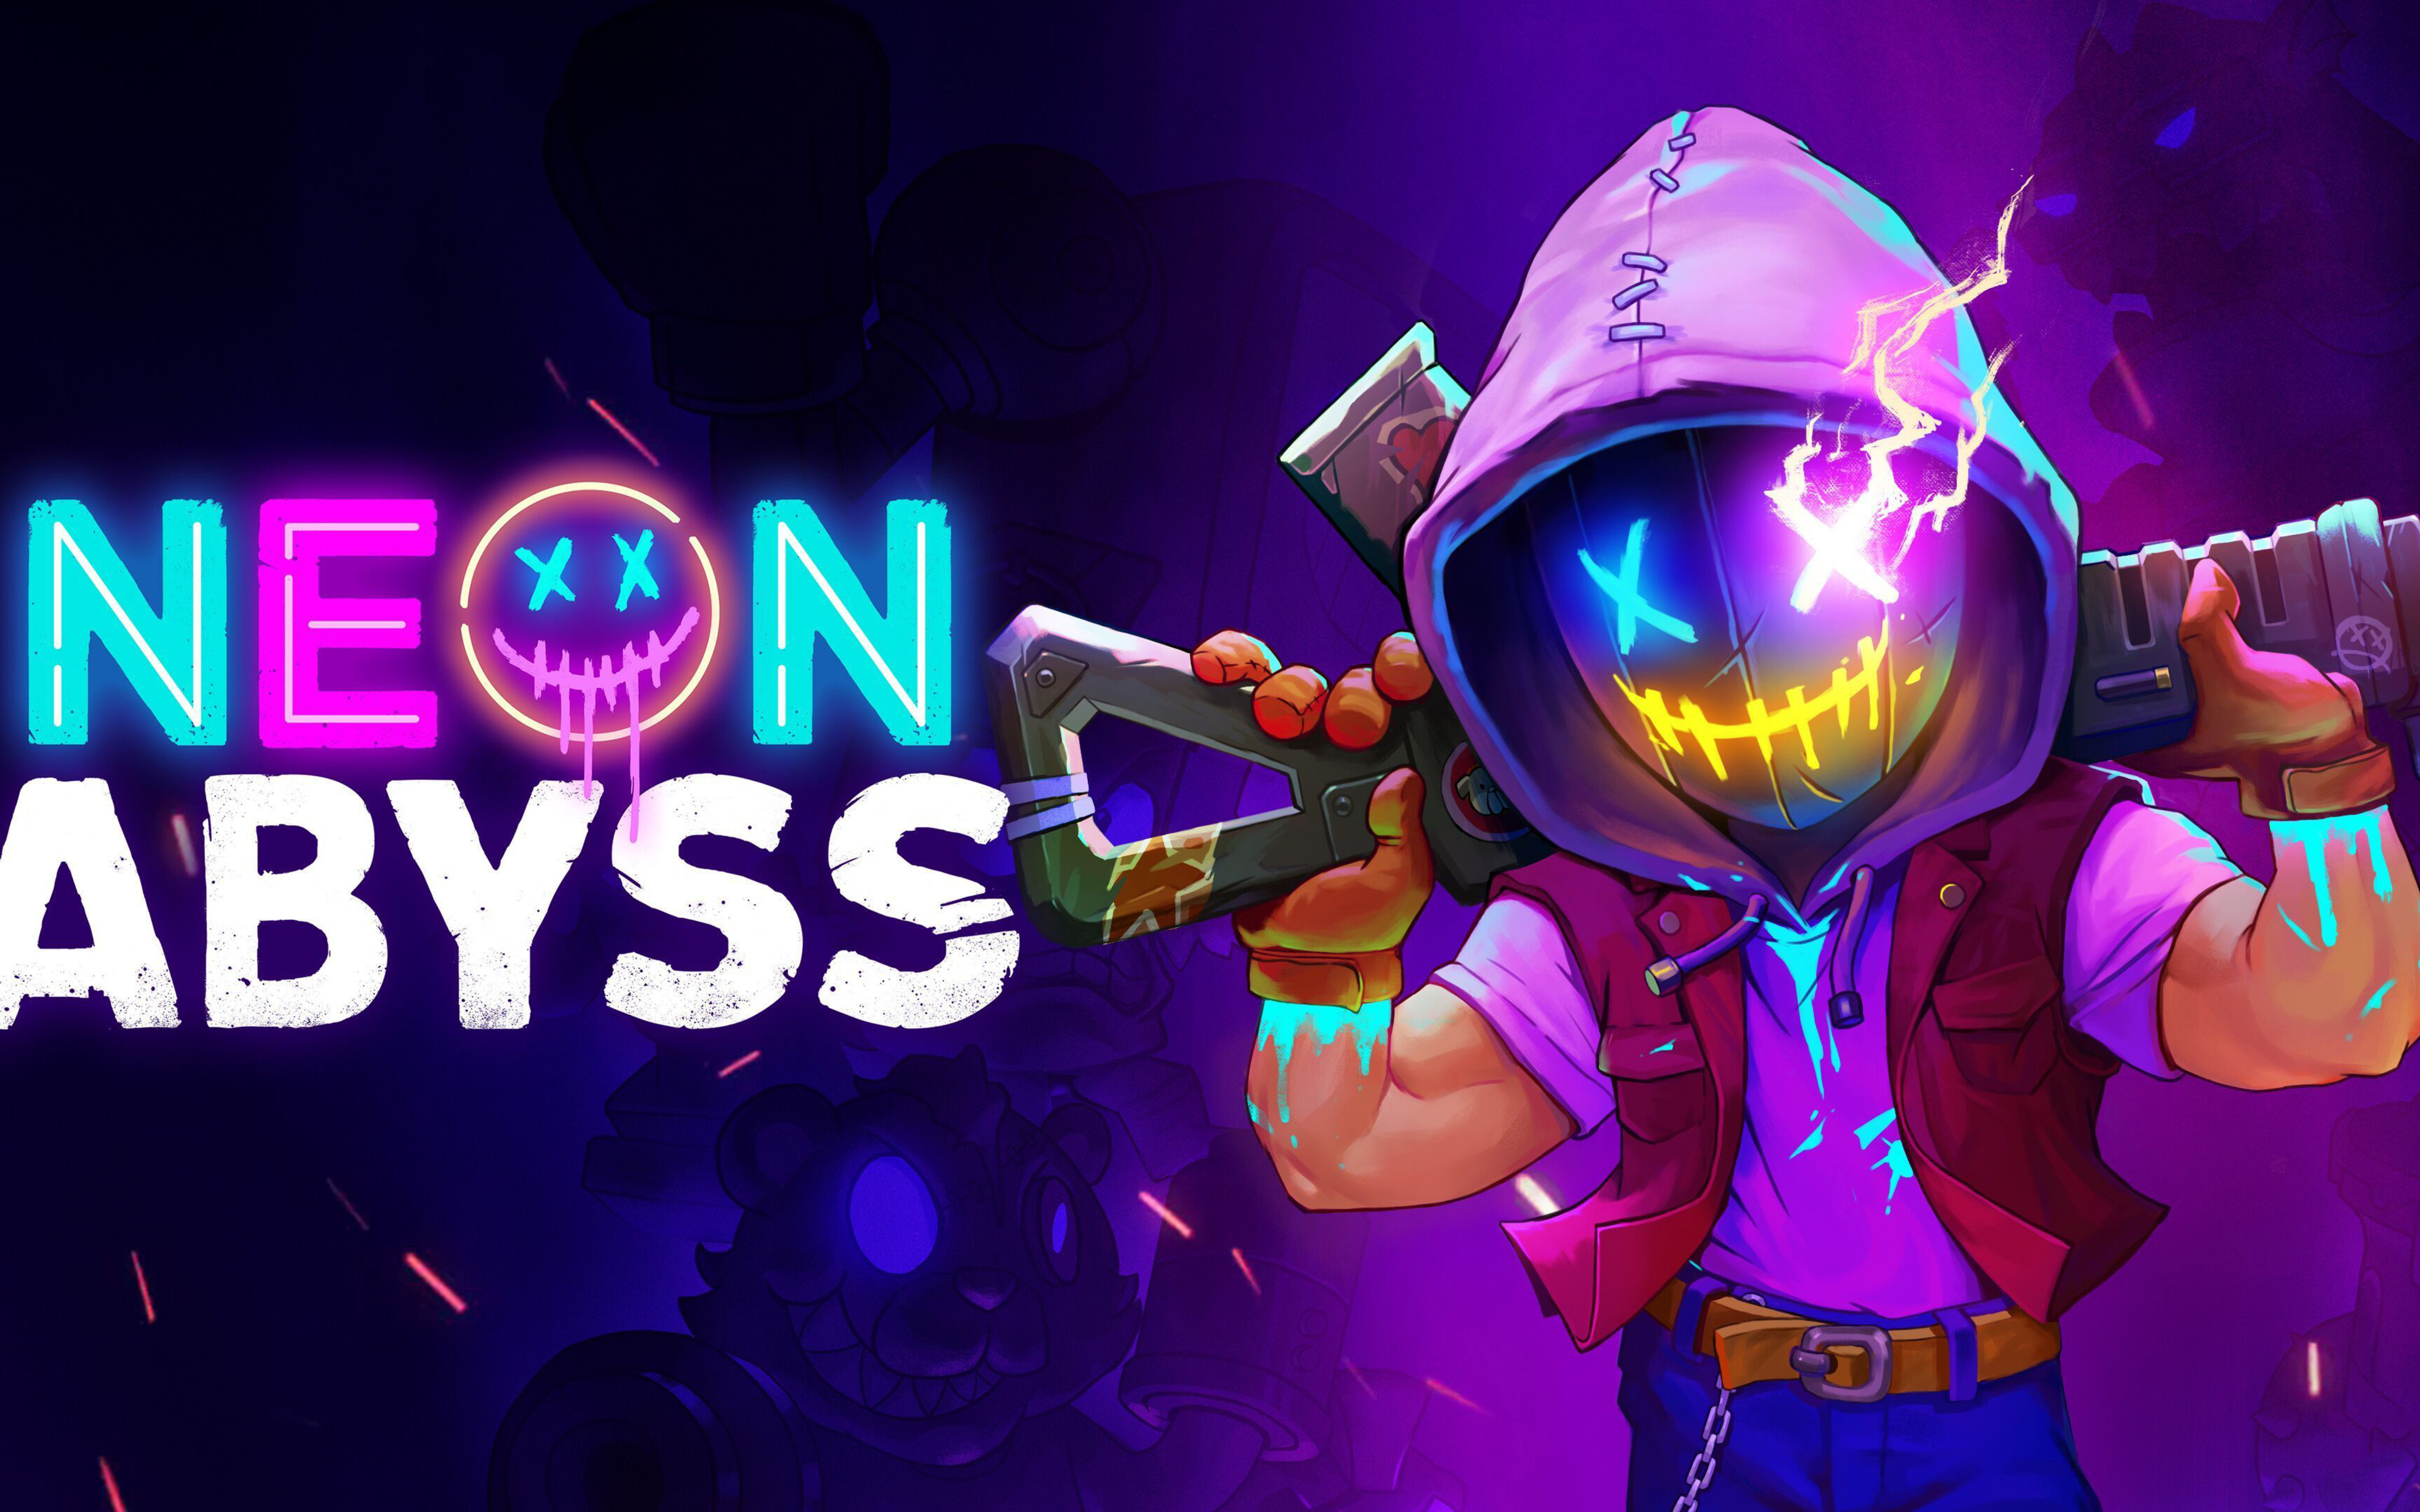 3840x2400 Neon Abyss Game 4k Hd 4k Wallpapers Images Backgrounds Photos And Pictures